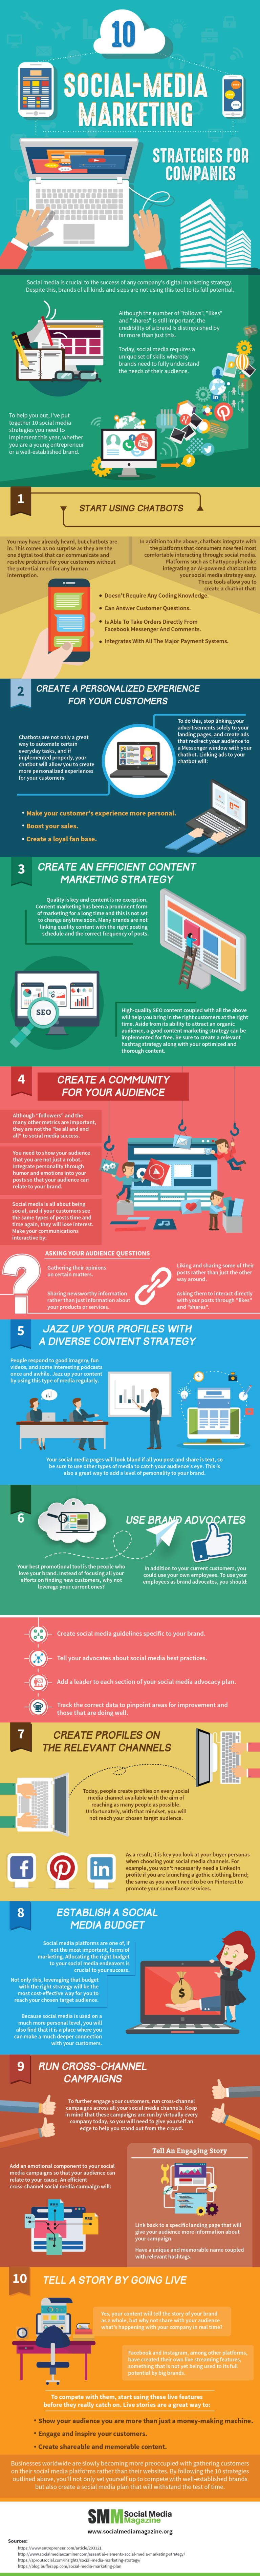 10 Social Media Marketing Strategies for Companies - #infographic